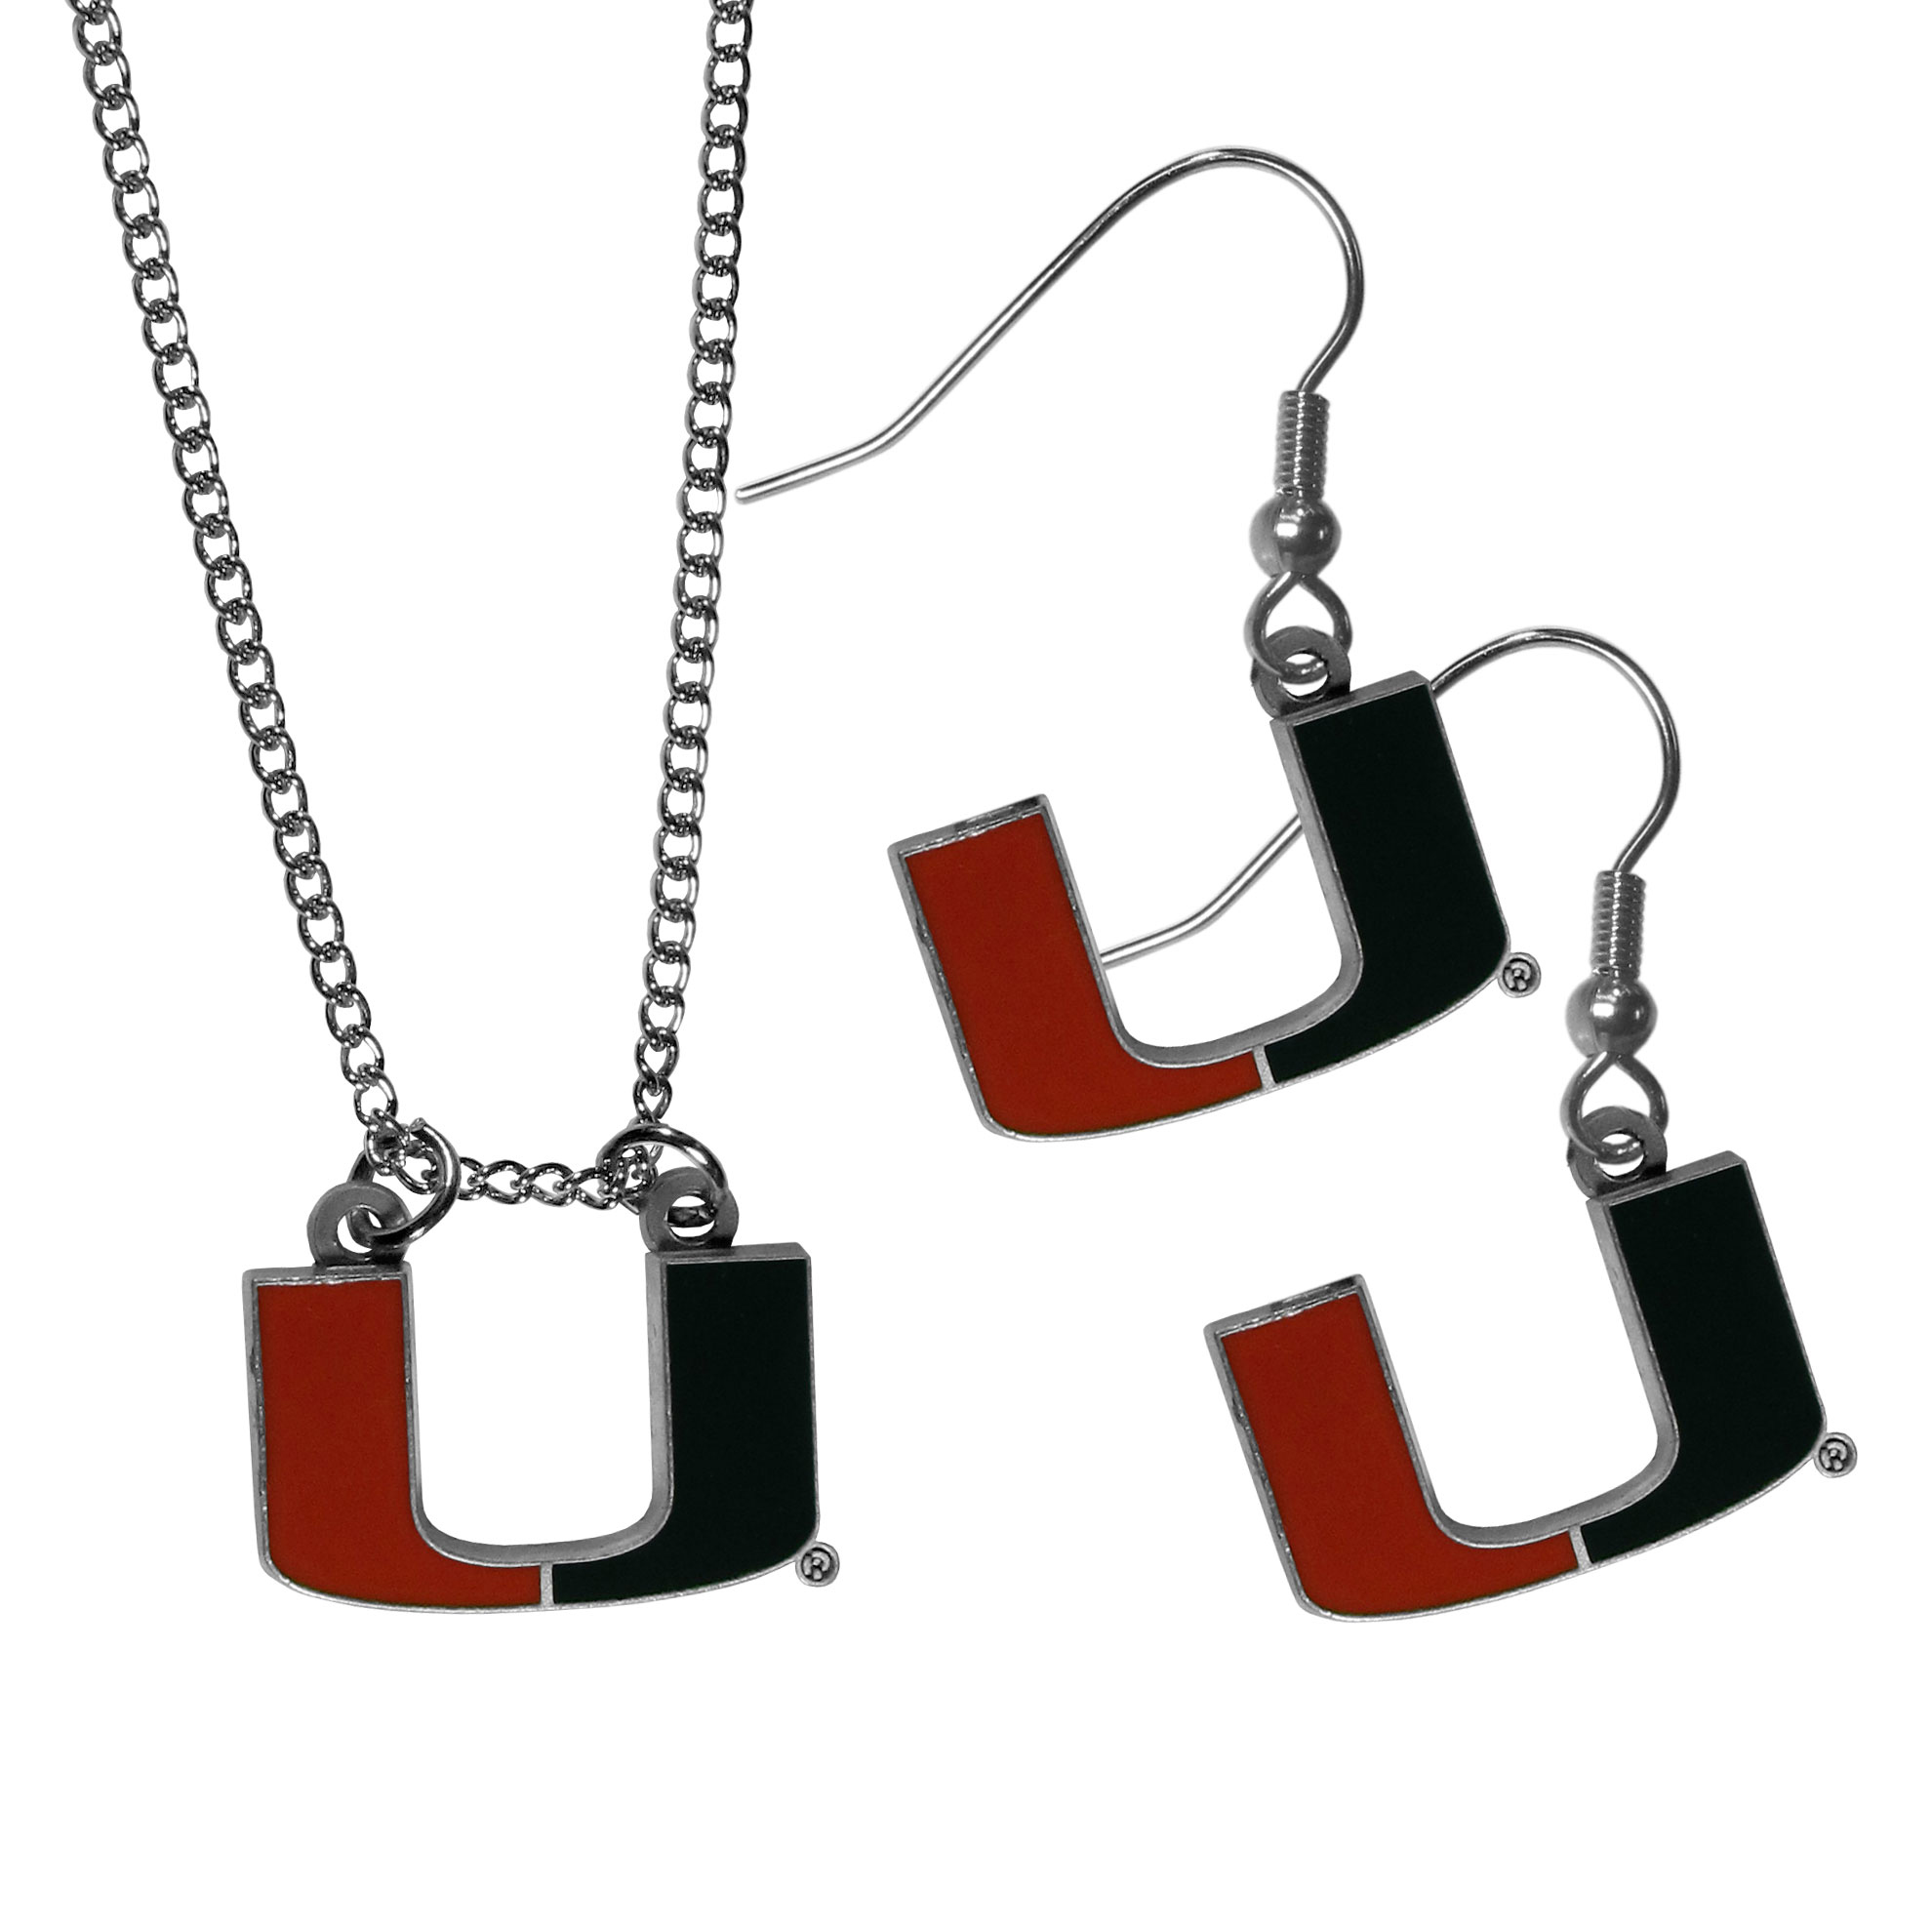 Miami Hurricanes Dangle Earrings and Chain Necklace Set - This classic jewelry set contains are most popular Miami Hurricanes dangle earrings and 22 inch chain necklace. The trendy, dangle earrings are lightweight and feature a fully cast metal team charm with enameled team colors. The matching necklace completes this fashion forward combo and is a spirited set that is perfect for game day but nice enough for everyday.